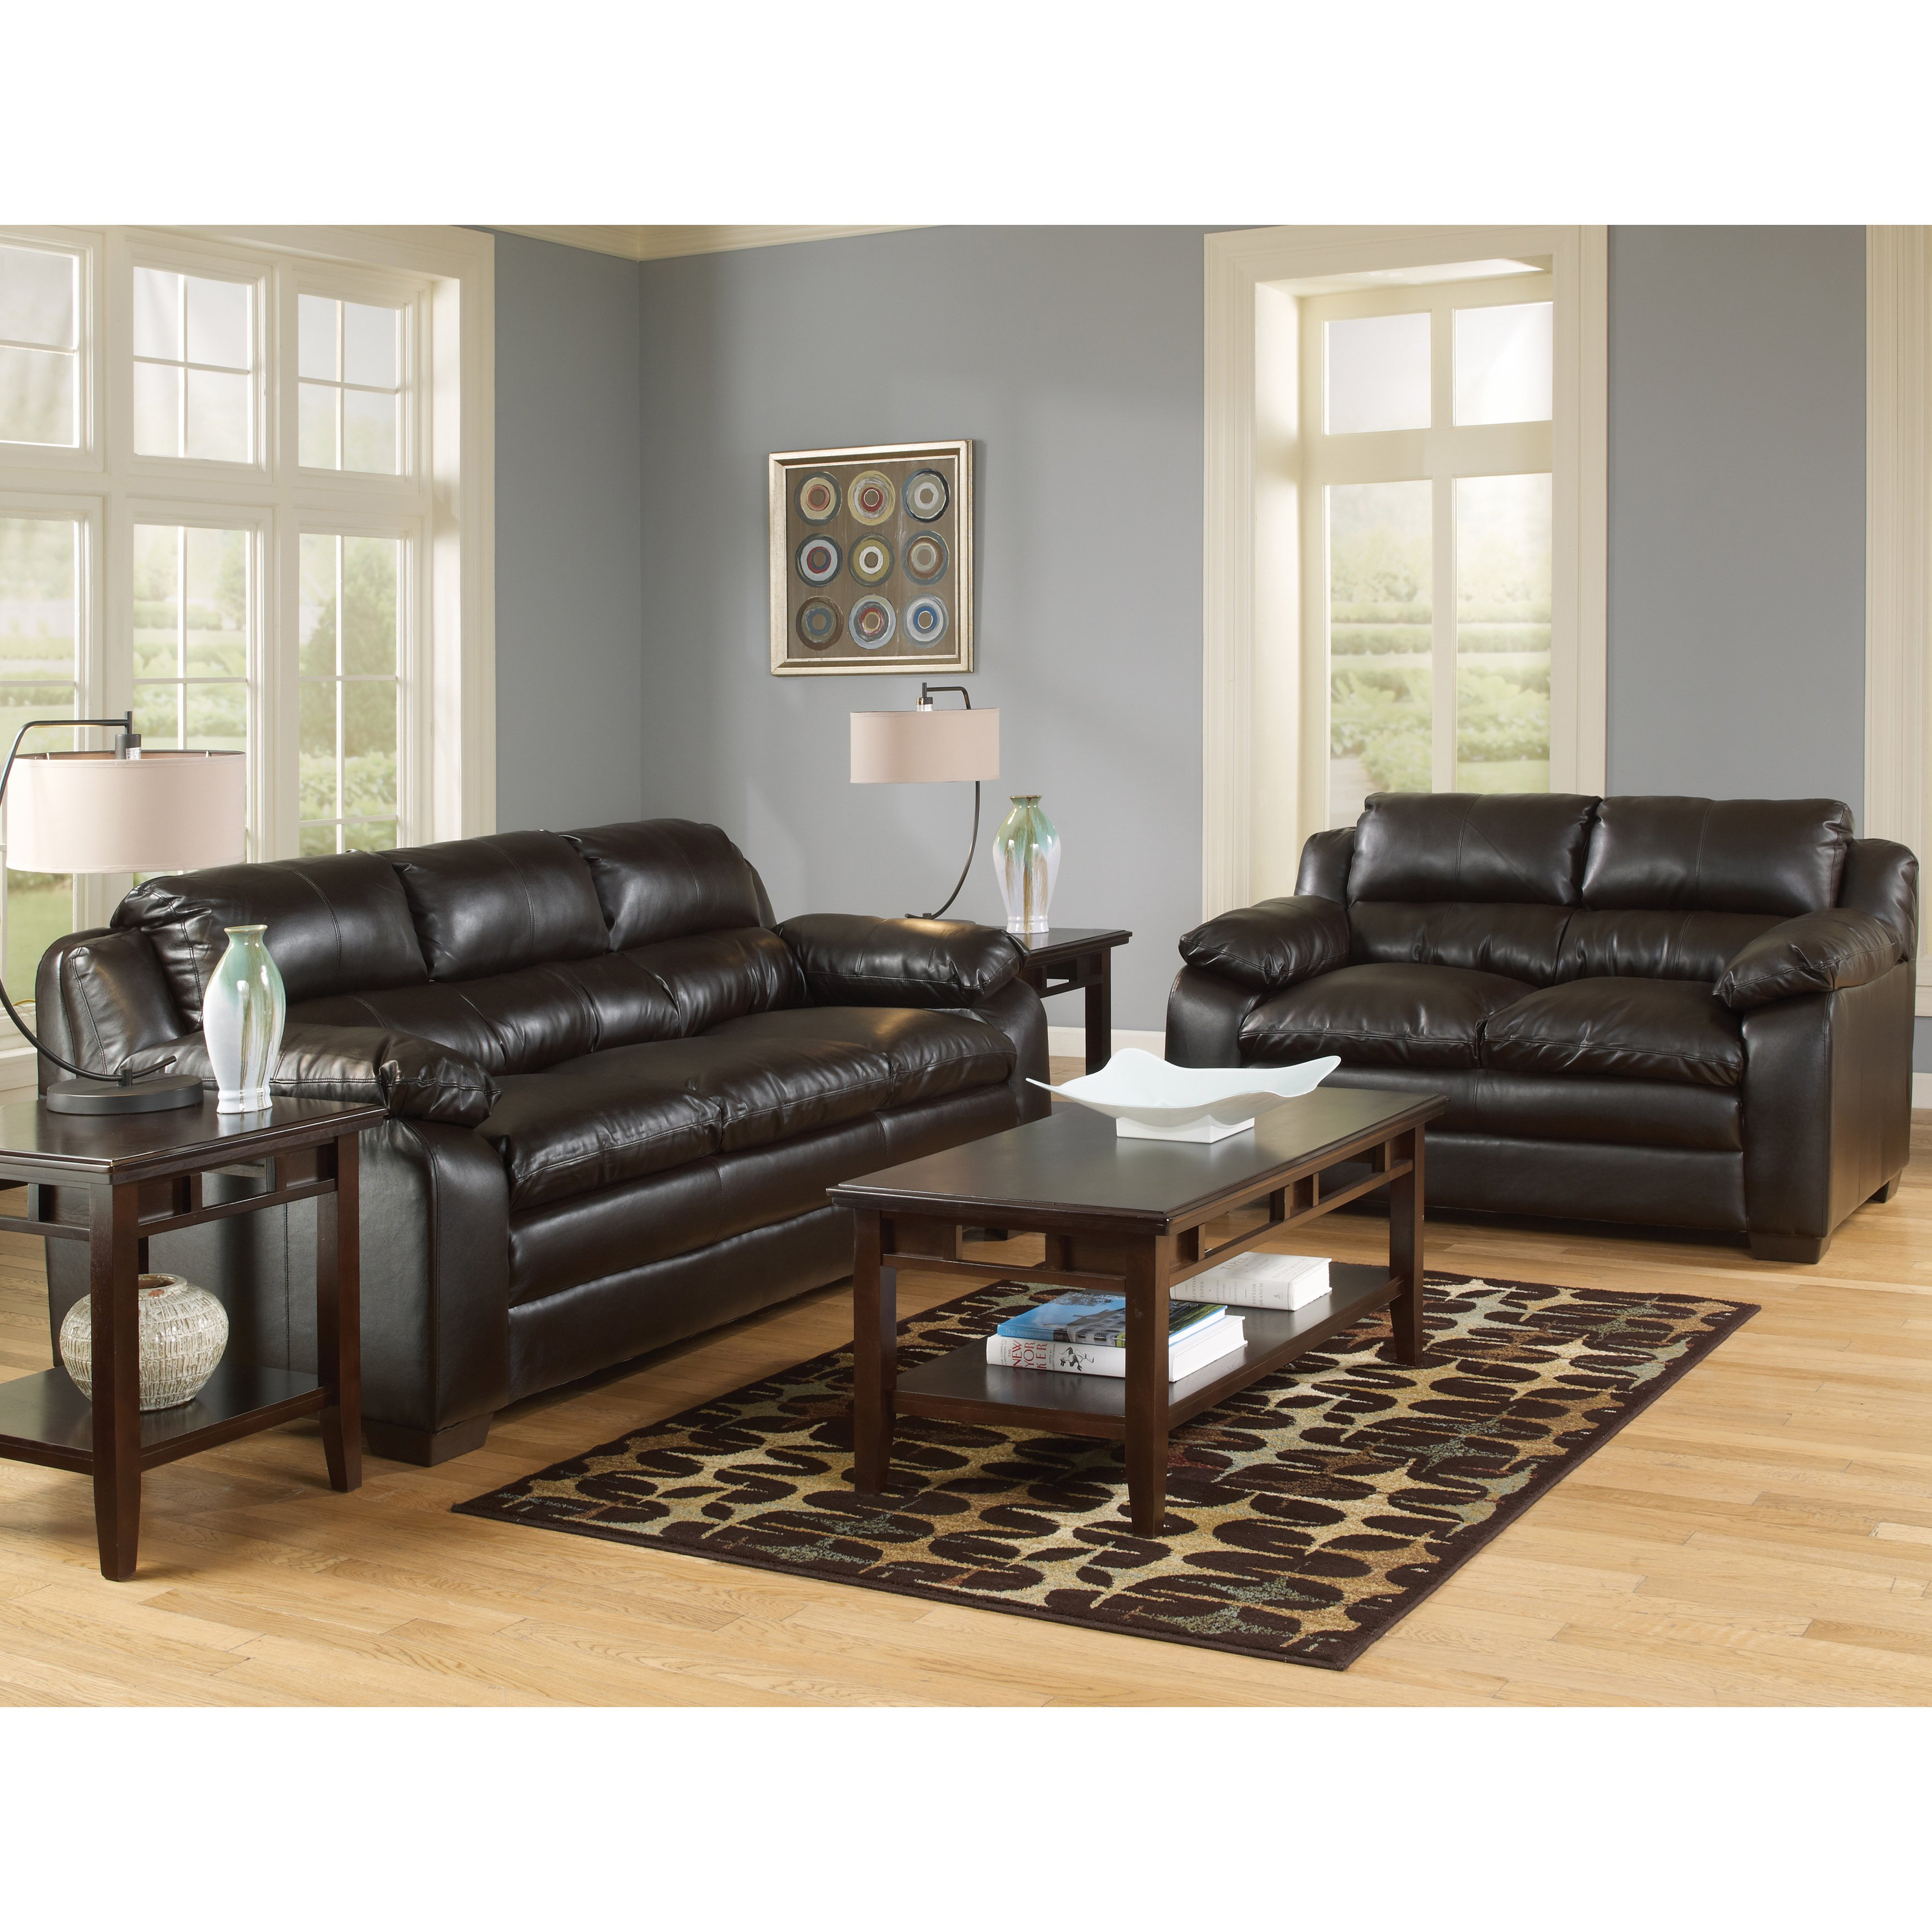 Shop Art Van Maddox Espresso Sofa And Loveseat Set – Free Shipping Regarding Maddox Oversized Sofa Chairs (Image 14 of 20)